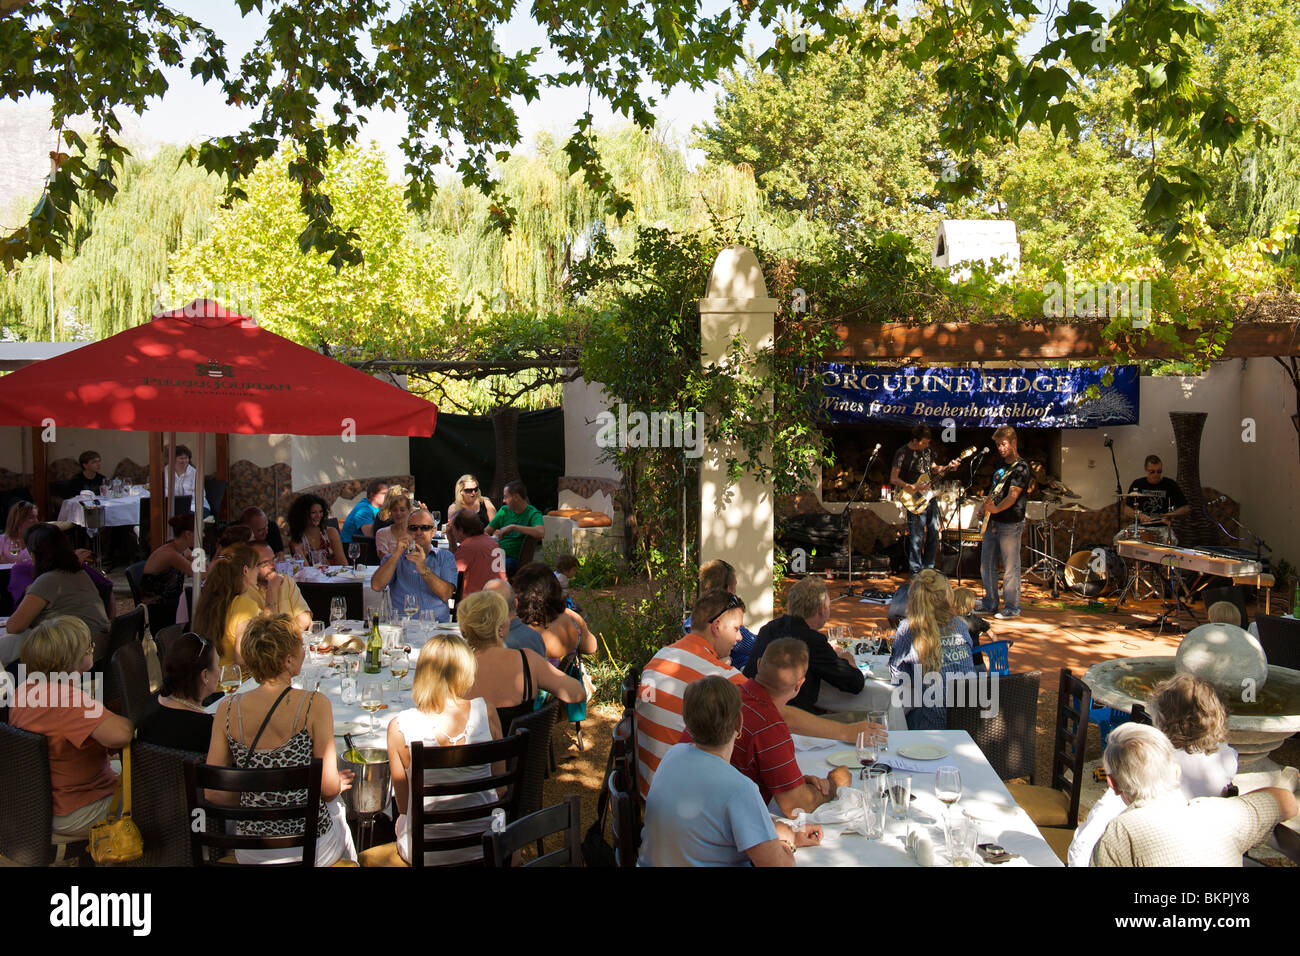 People eating lunch and watching live music at the Allora restaurant in Franschhoek. - Stock Image